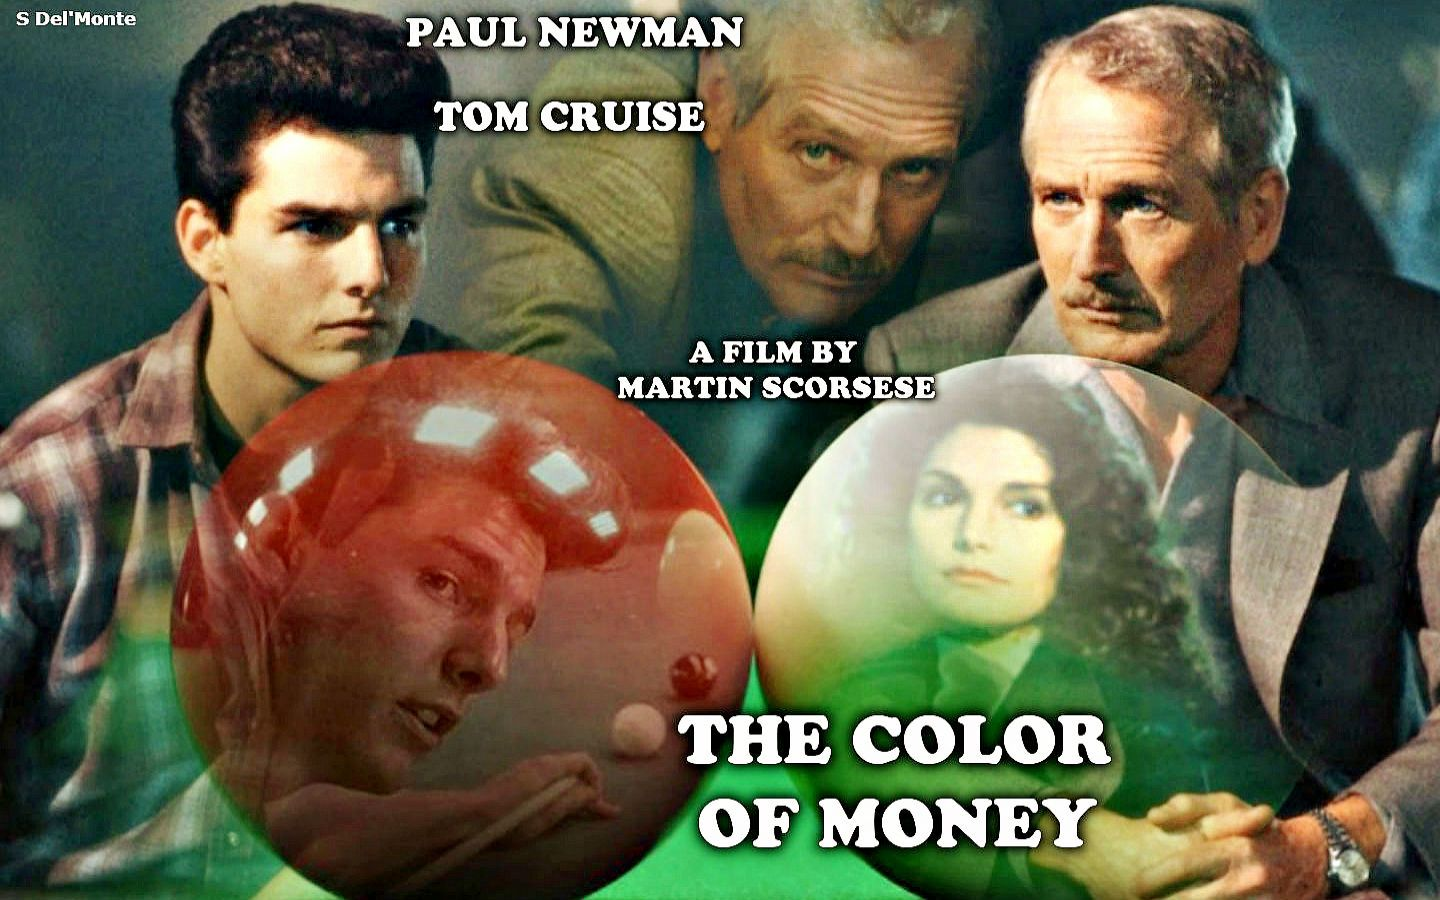 The Color Of Money Paul Newman Tom Cruise Martin Scorsese